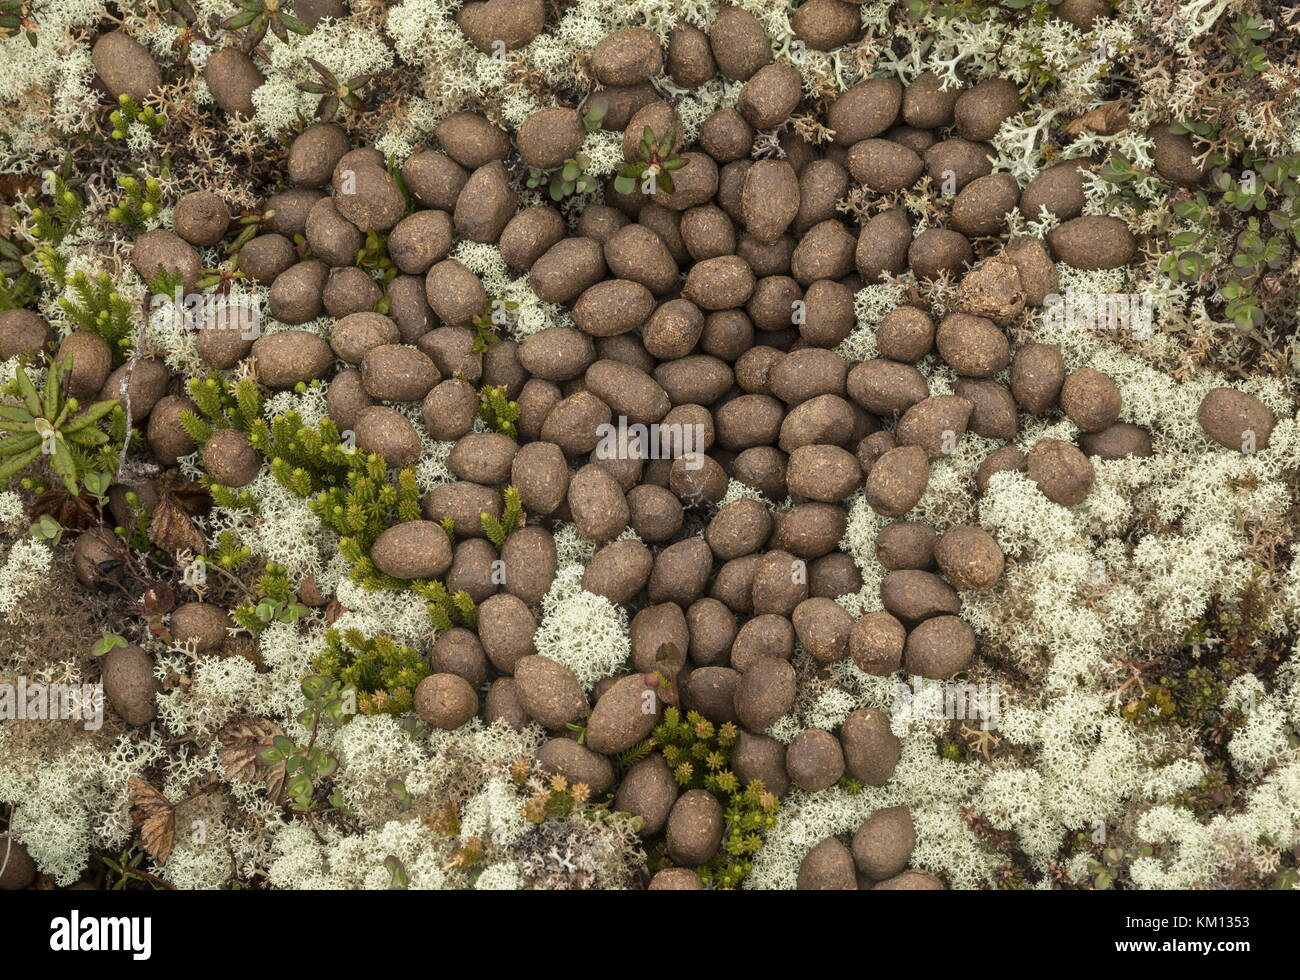 droppings stockfotos droppings bilder alamy. Black Bedroom Furniture Sets. Home Design Ideas